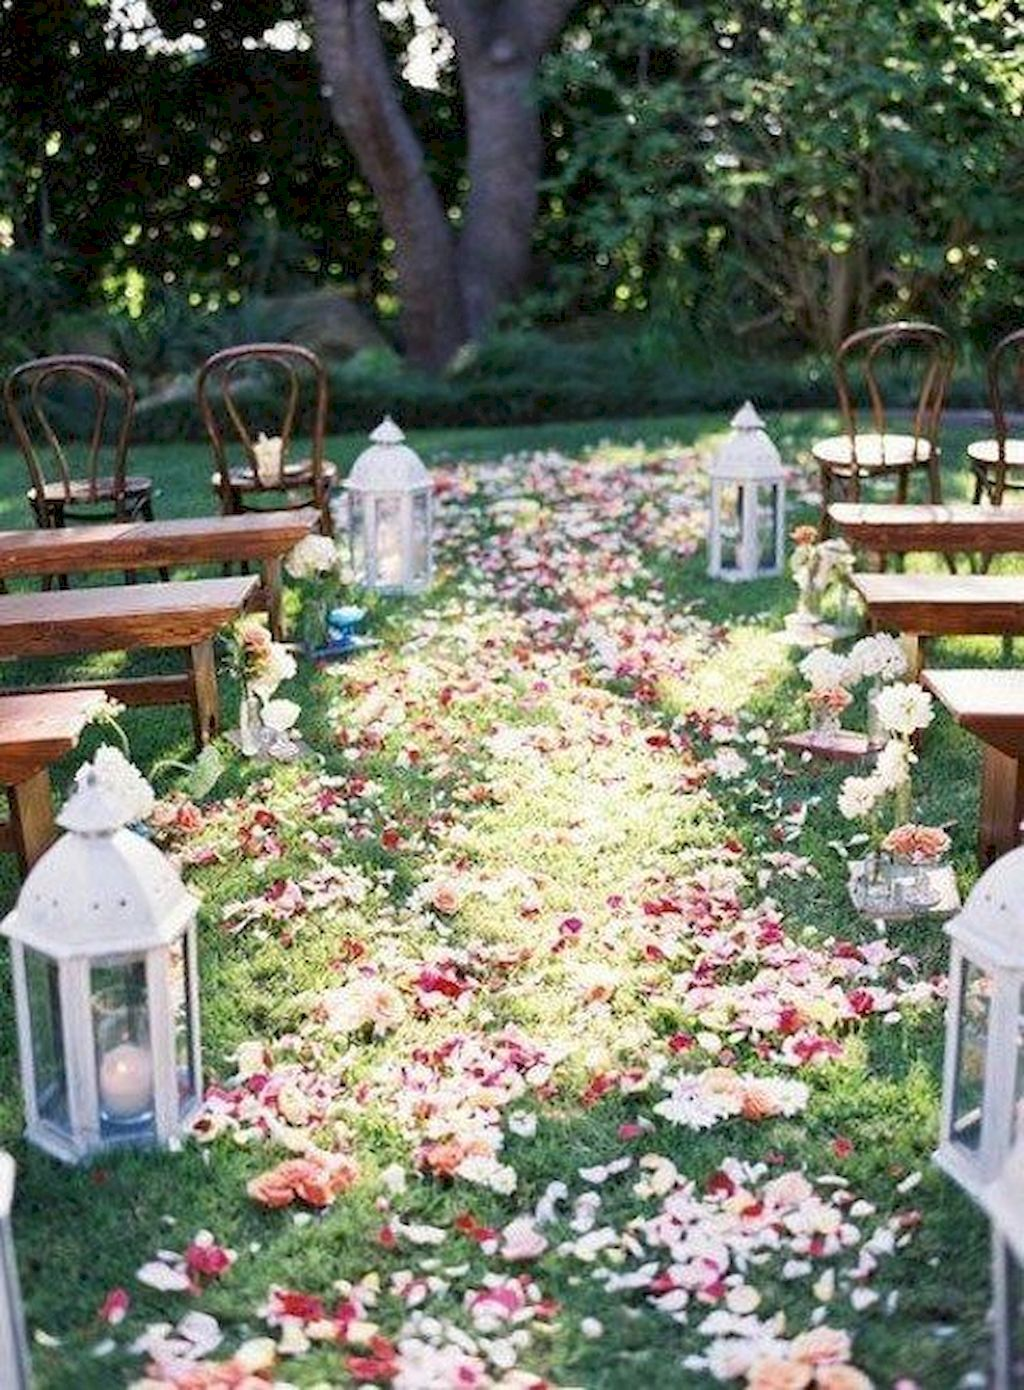 outdoor ideas decorations backyard with cheap patio decor of a rentals wedding to regard stunning how and home host size budget build decorating on full an at reception planning simple